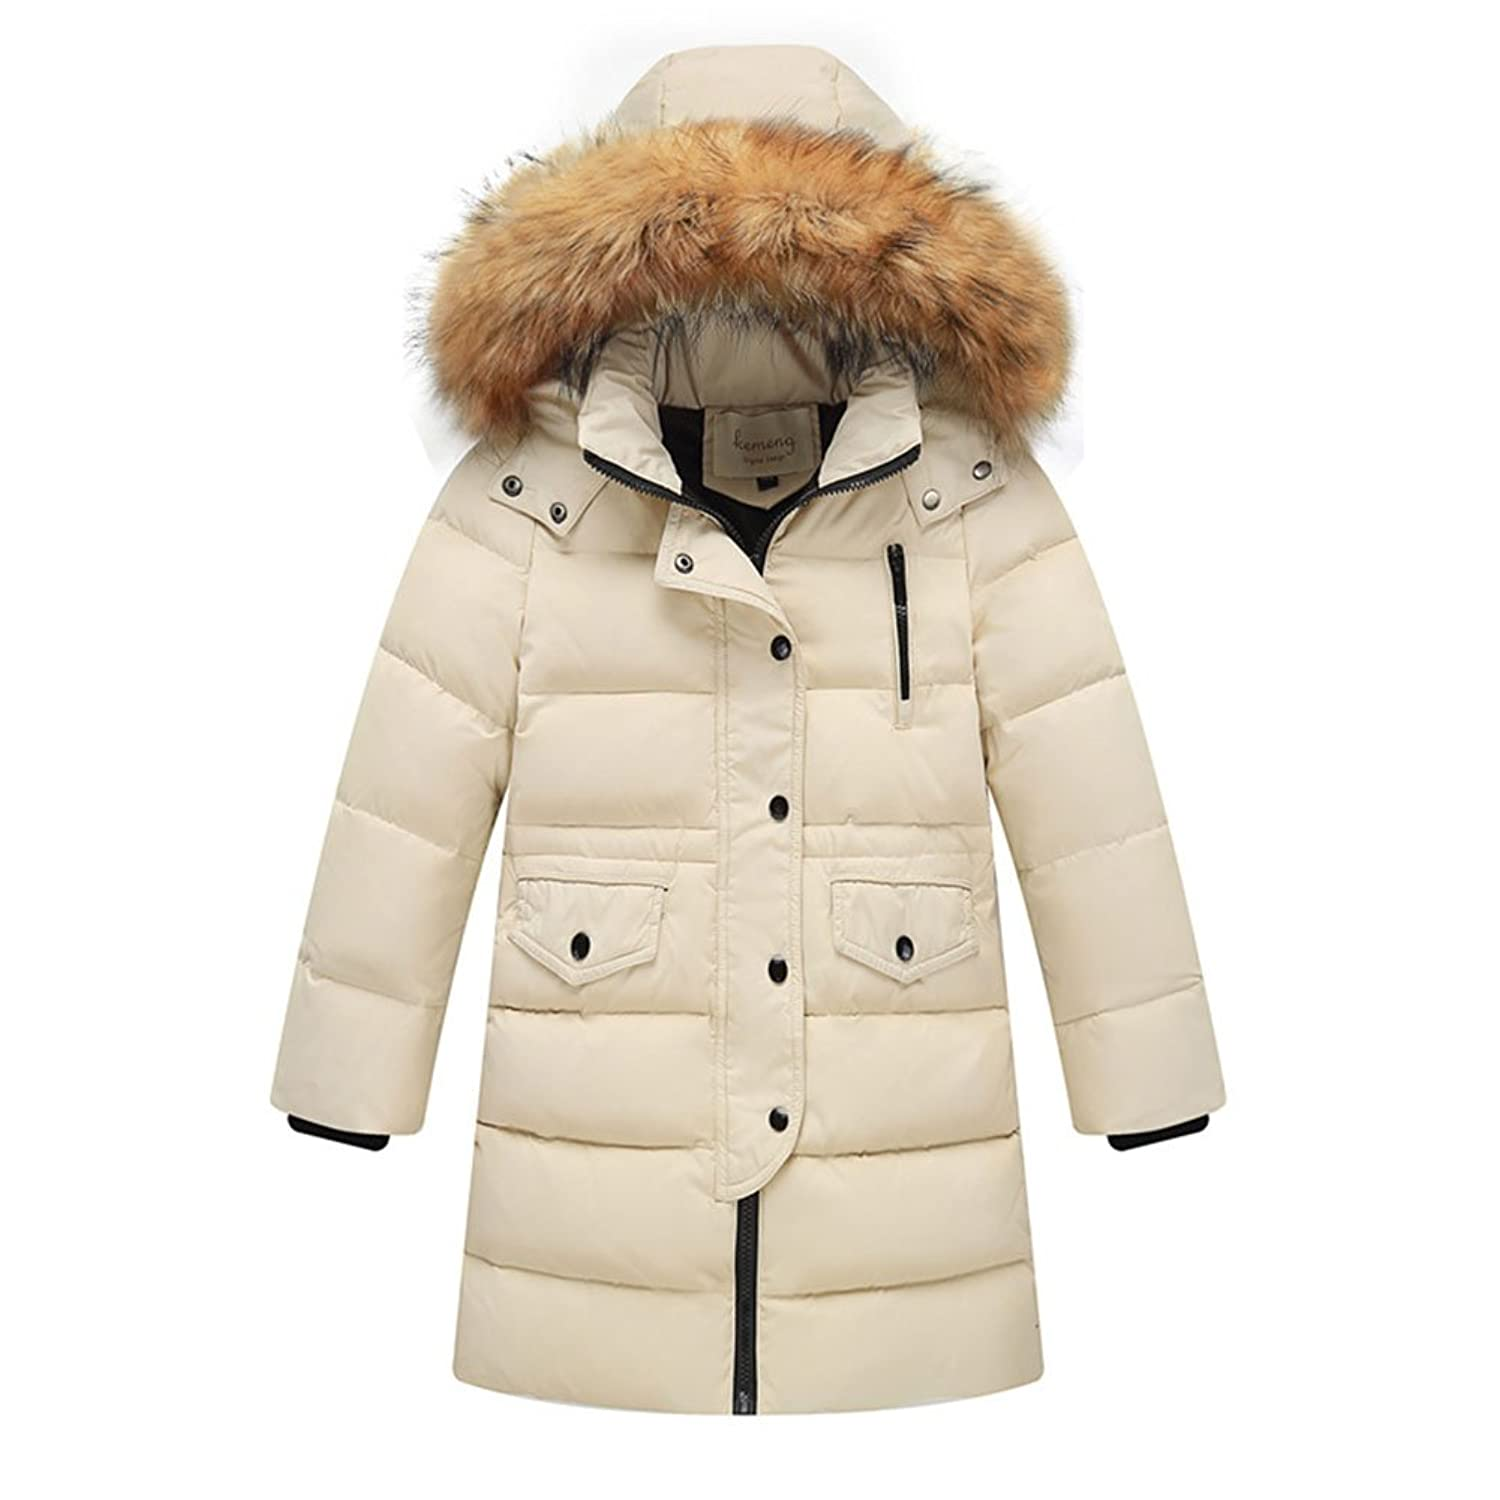 9b5269bd9b1 Quilted down coat featuring beautiful waisted fit  Concealed zipper closure  with snap placket. Zippered hood with detachable faux fur trim